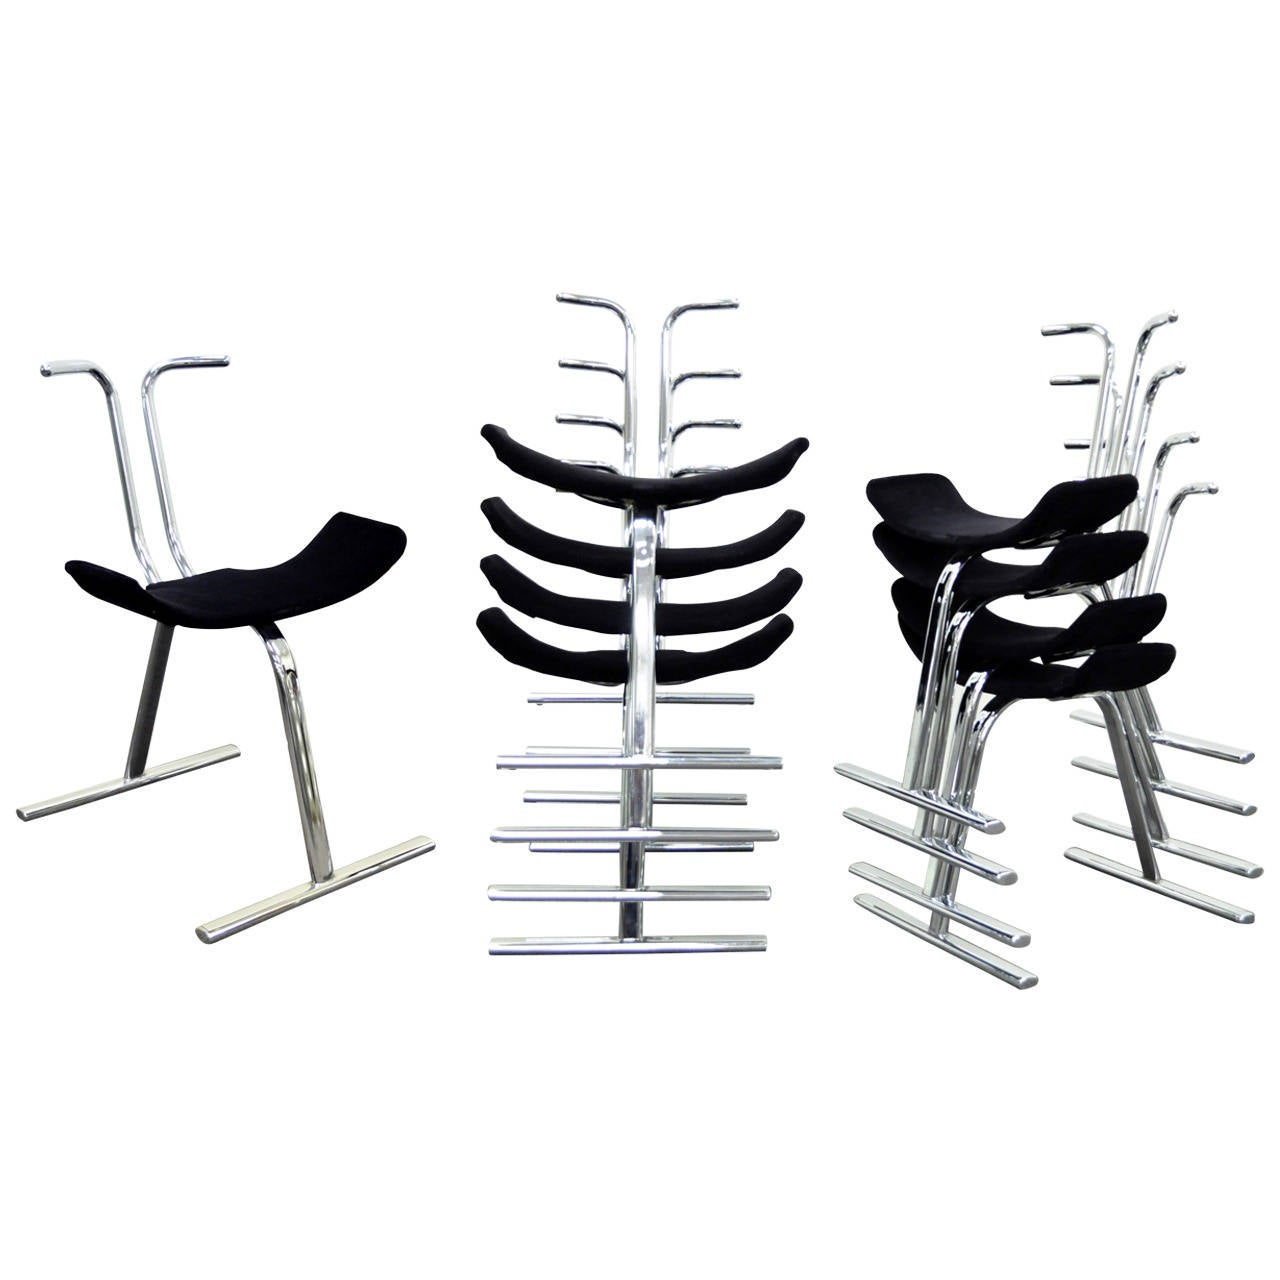 Eight Mid-Century Modern Chrome Stacking Dining Side or Game Chairs by Stendig